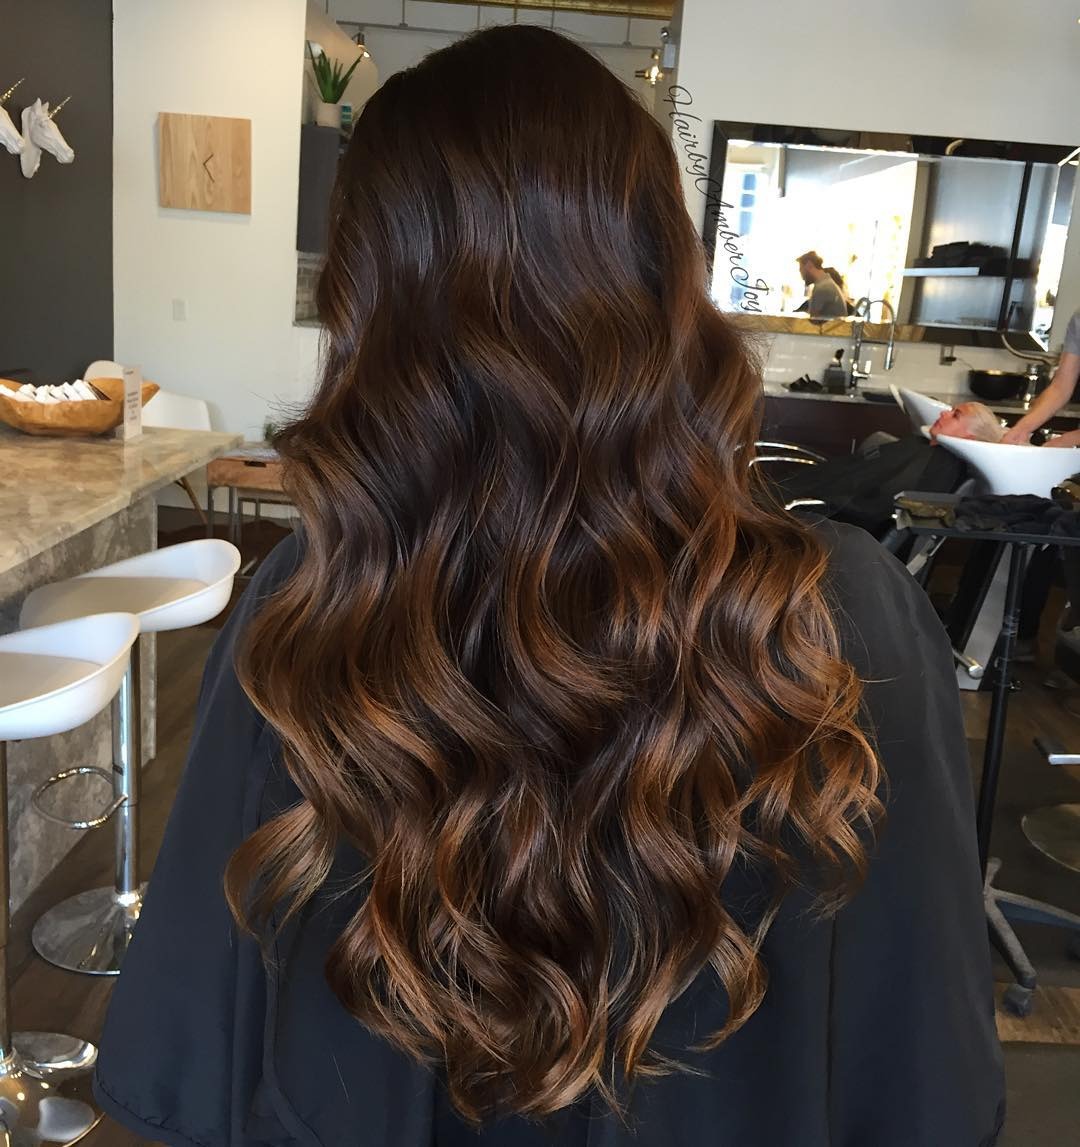 Carmel highlights on brown hair brown hairs 60 balayage hair color ideas with blonde brown caramel and red highlights pmusecretfo Gallery